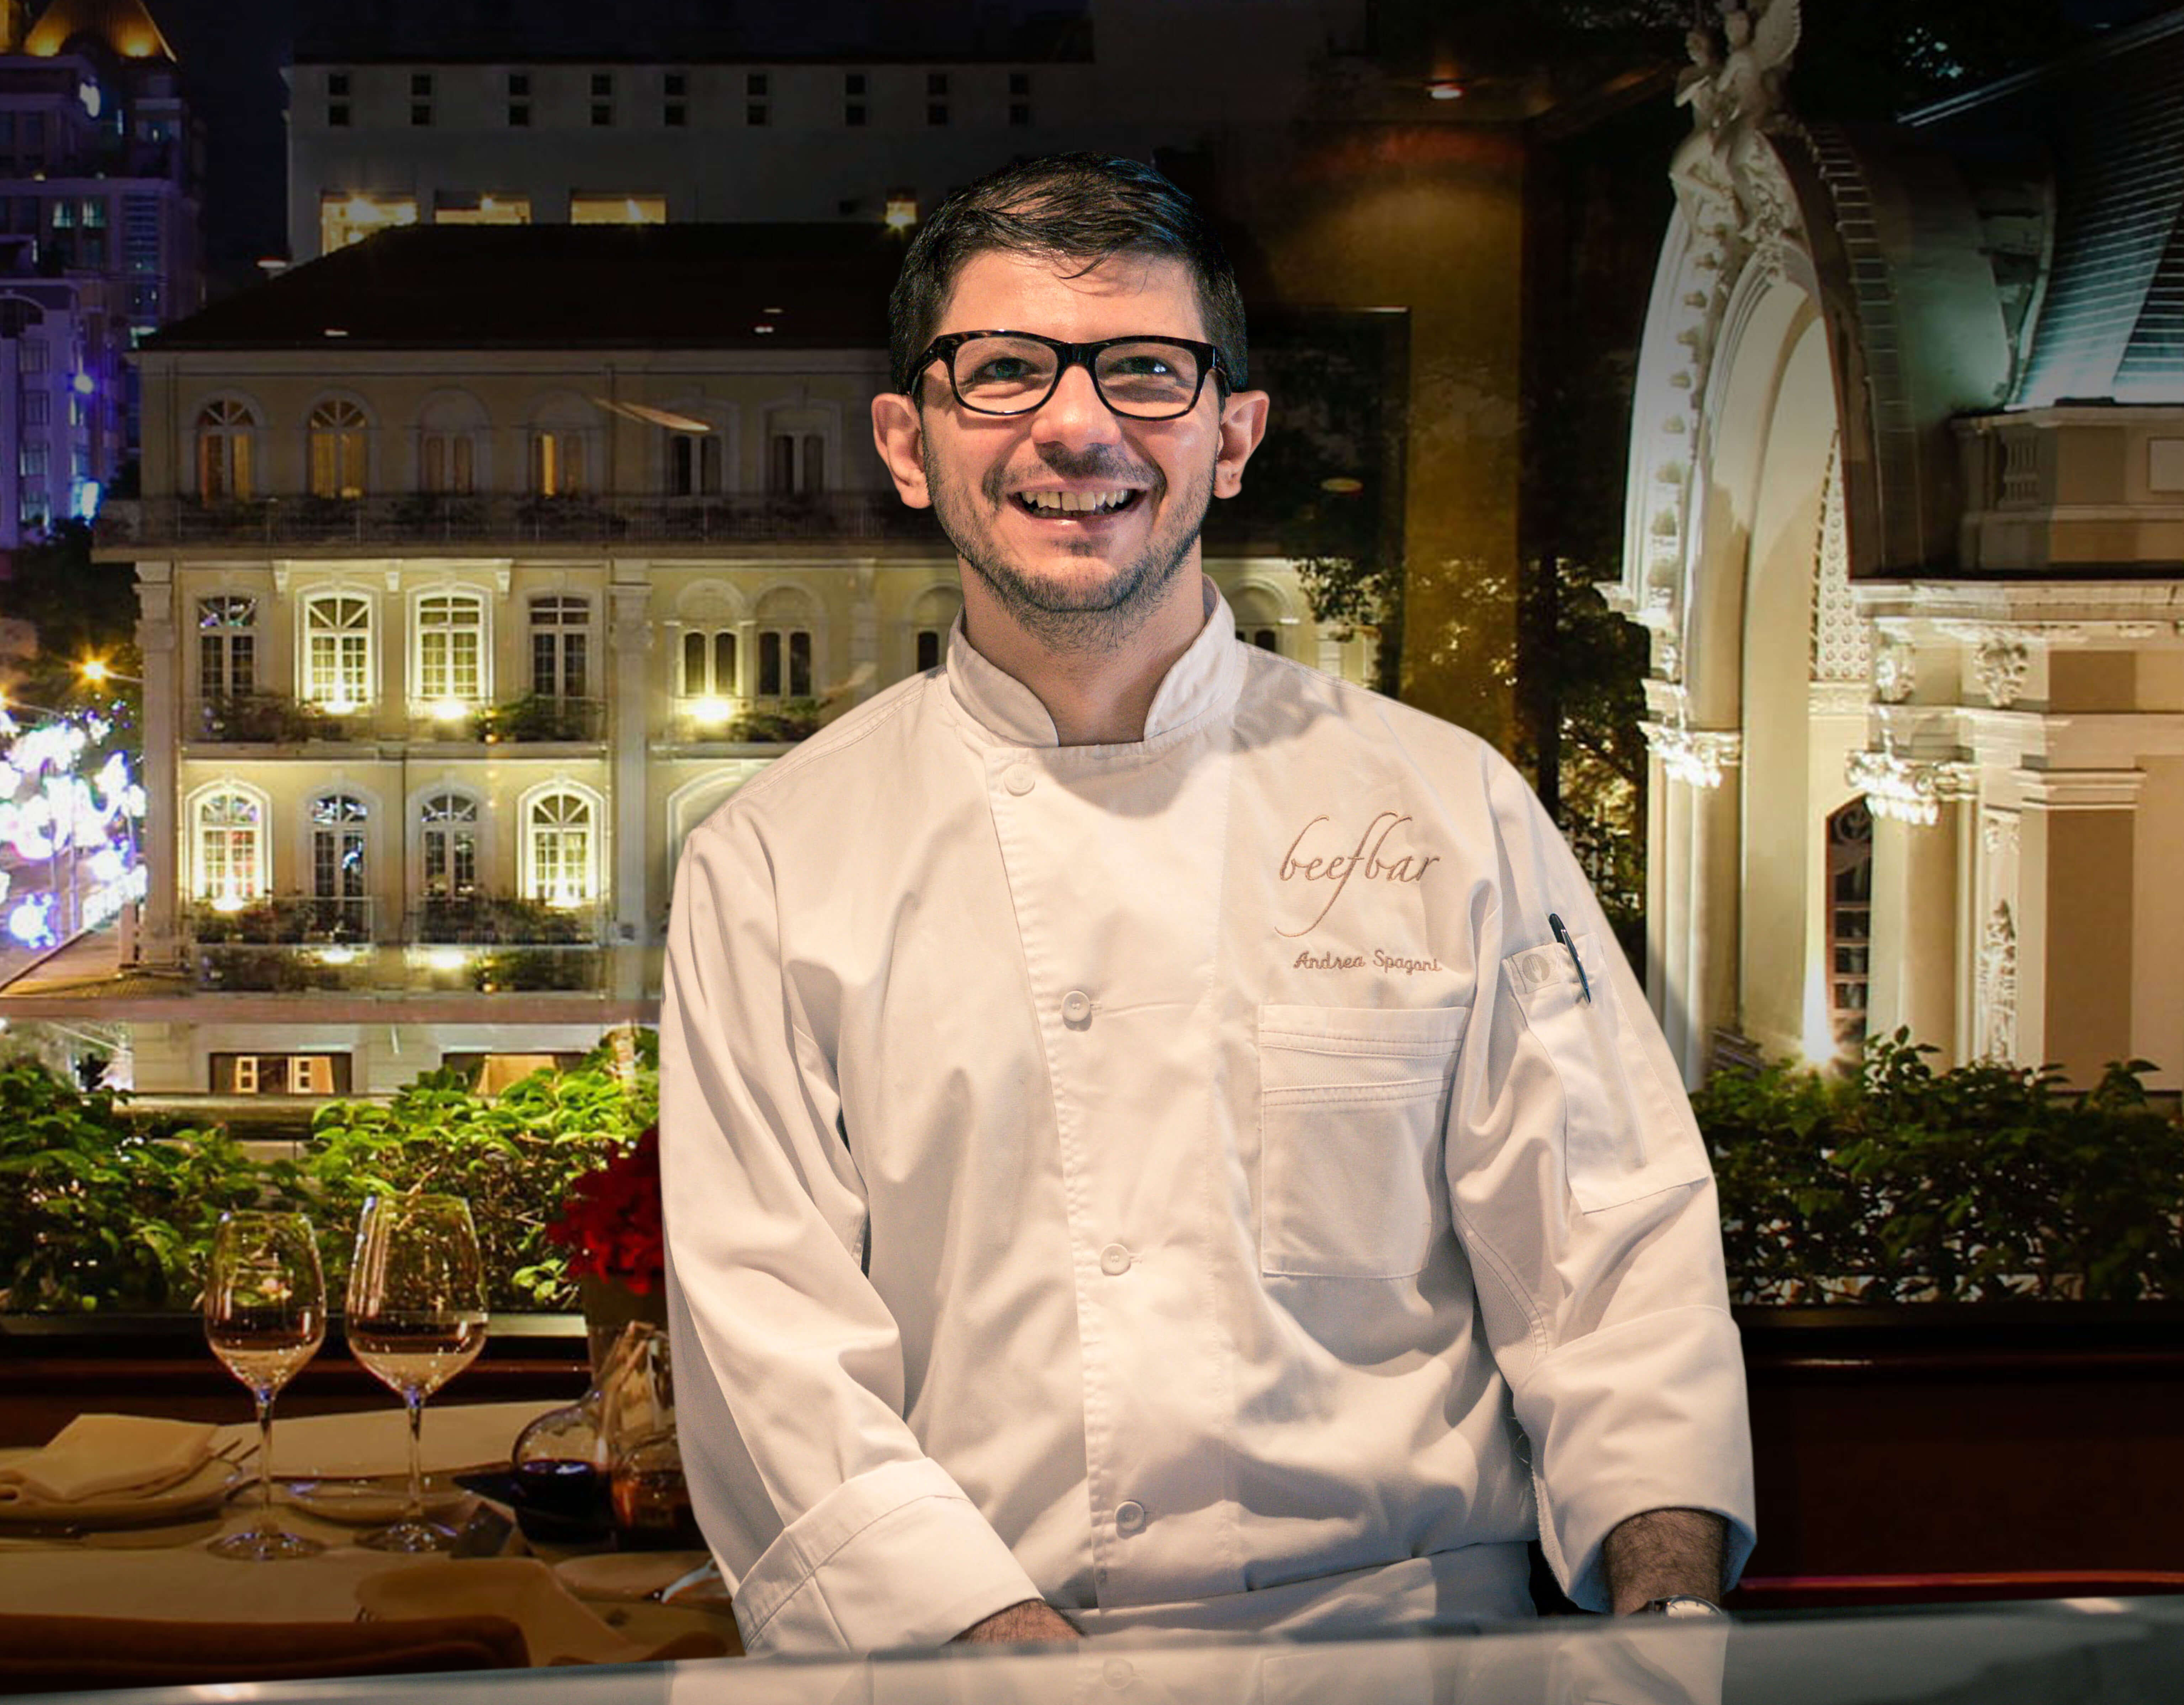 Andrea Spagoni Brings Best Of Michelin-starred Beefbar To Saigon